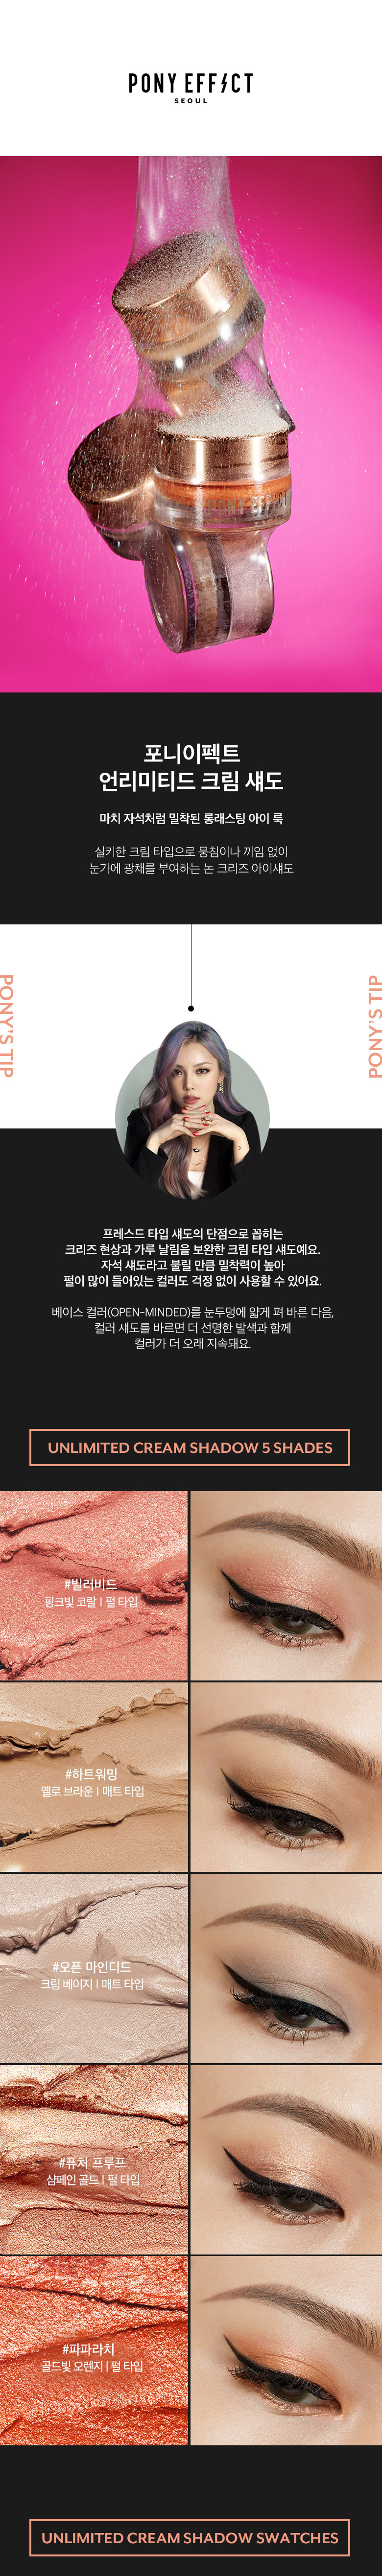 MEMEBOX Pony Effect Unlimited Cream Shadow 6g malaysia singapore indonesia